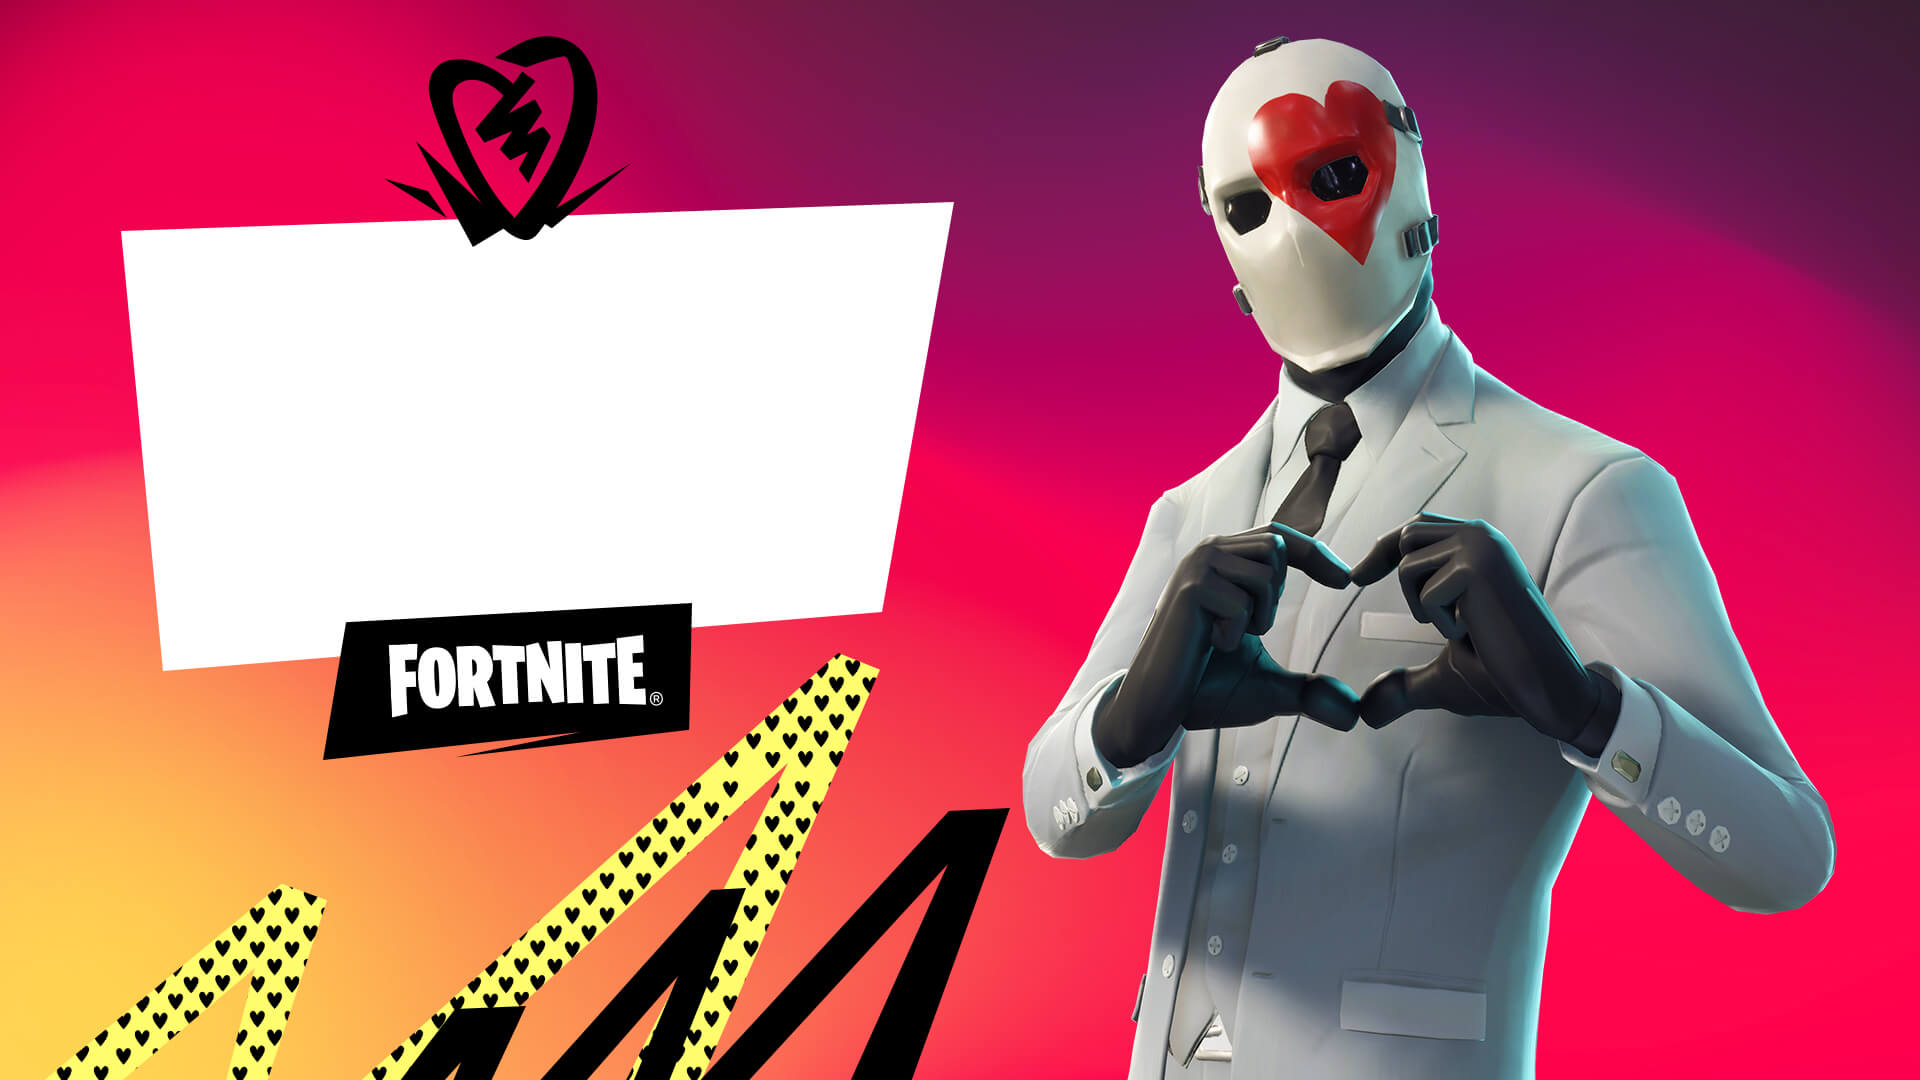 Fortnite Wild Card Valentines Card